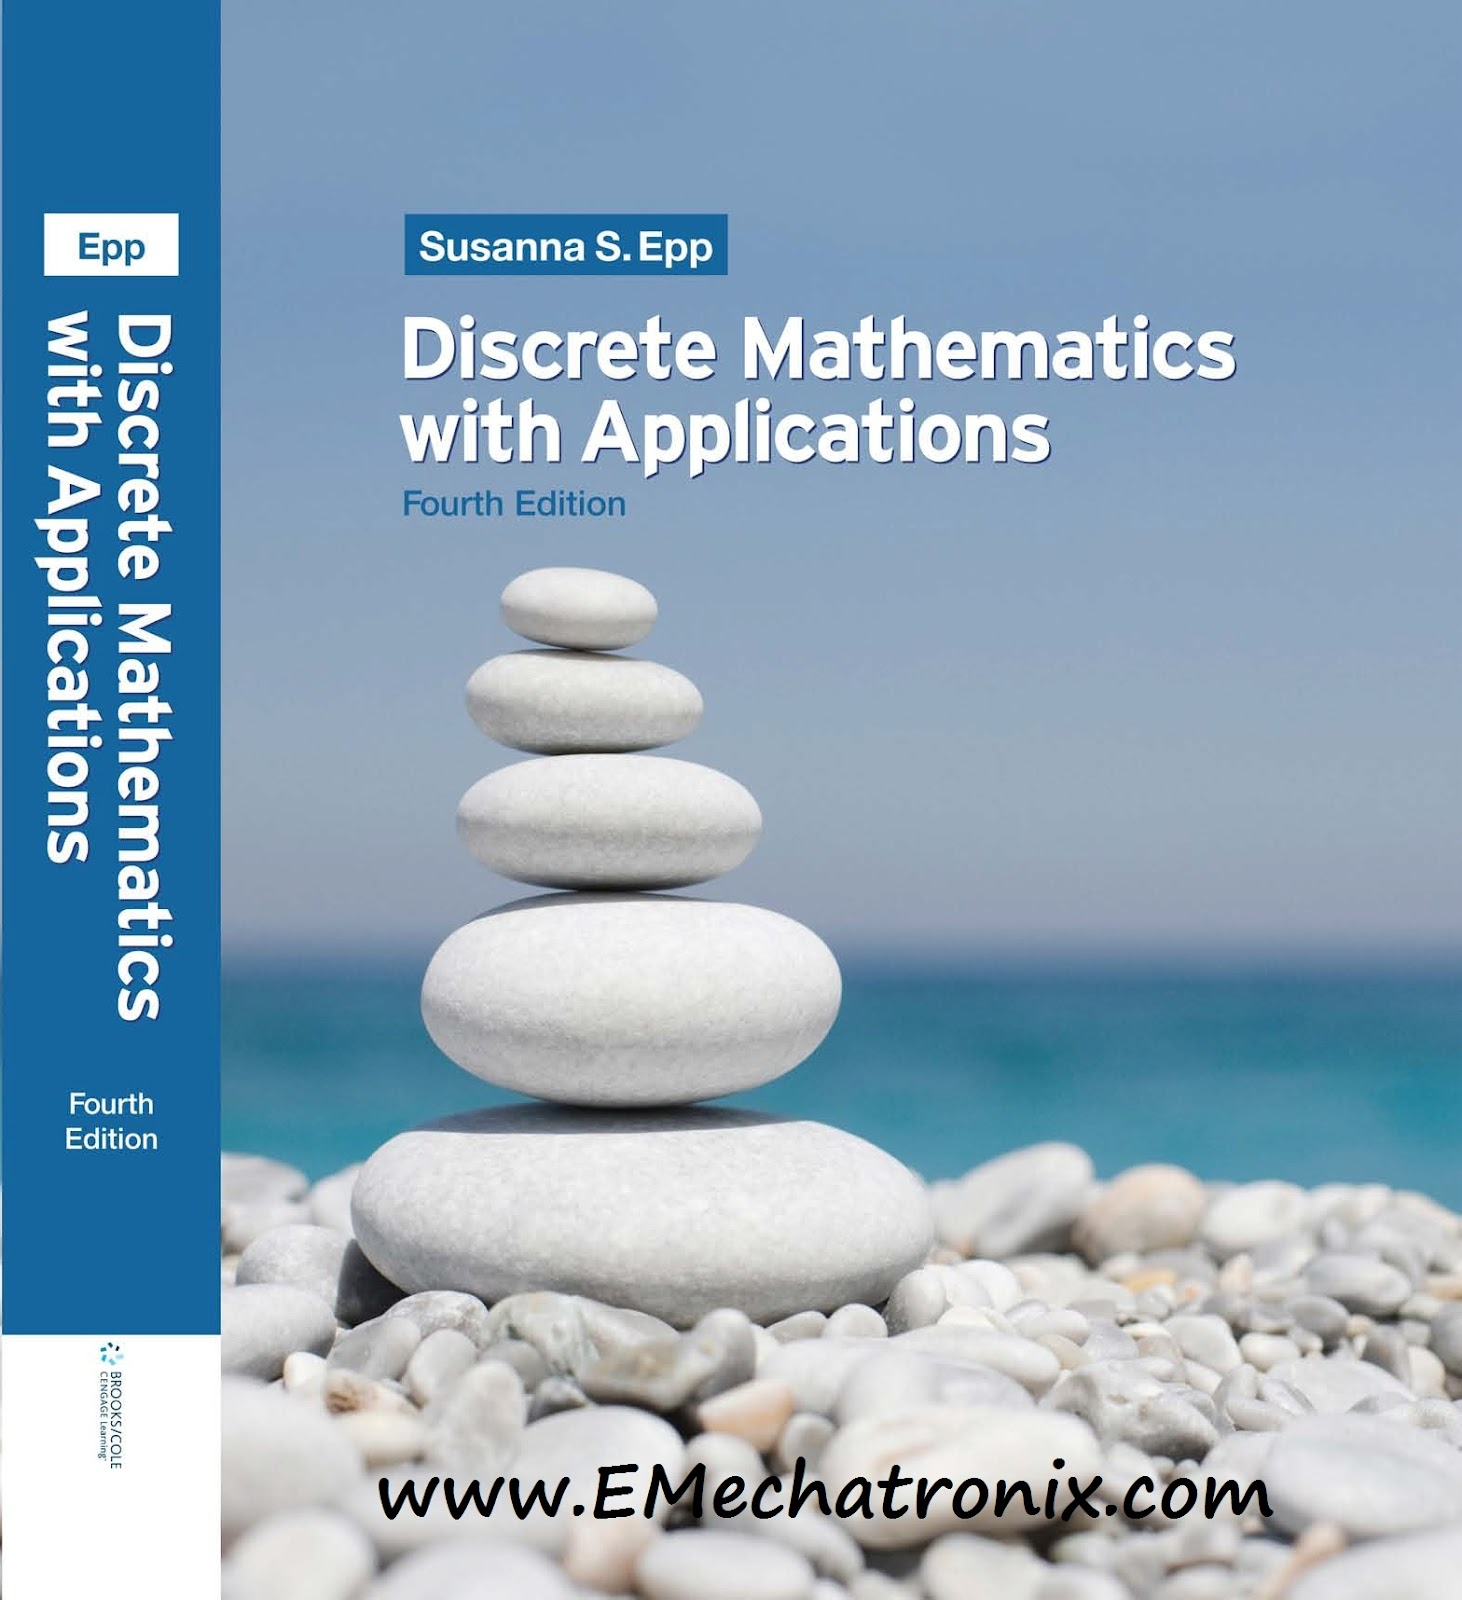 discrete mathematics with applications Discrete mathematics with applications by susanna s epp starting at $099 discrete mathematics with applications has 3 available editions to buy at alibris.